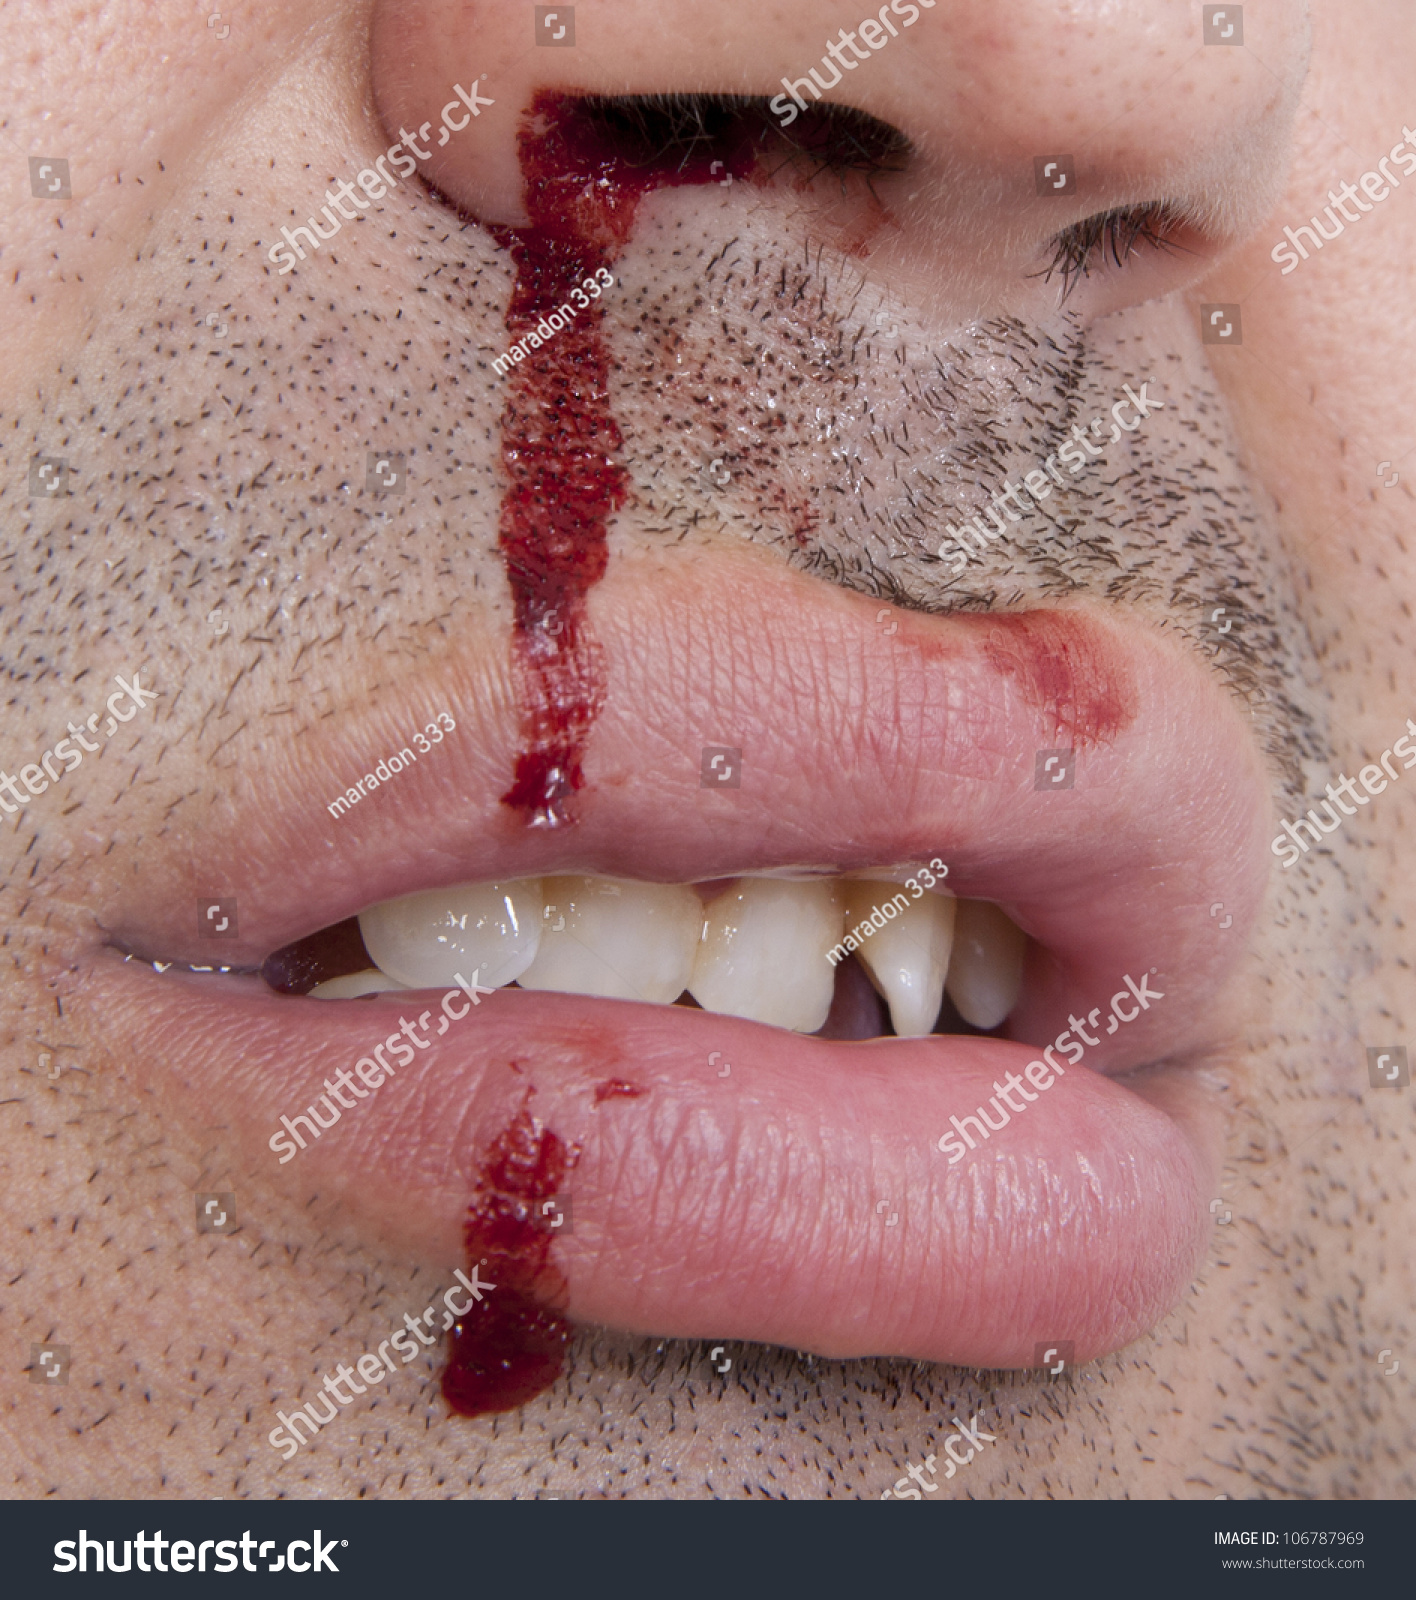 Hurt Nose Bleeding Stock Photo Dried Up Nose Bleed Blood